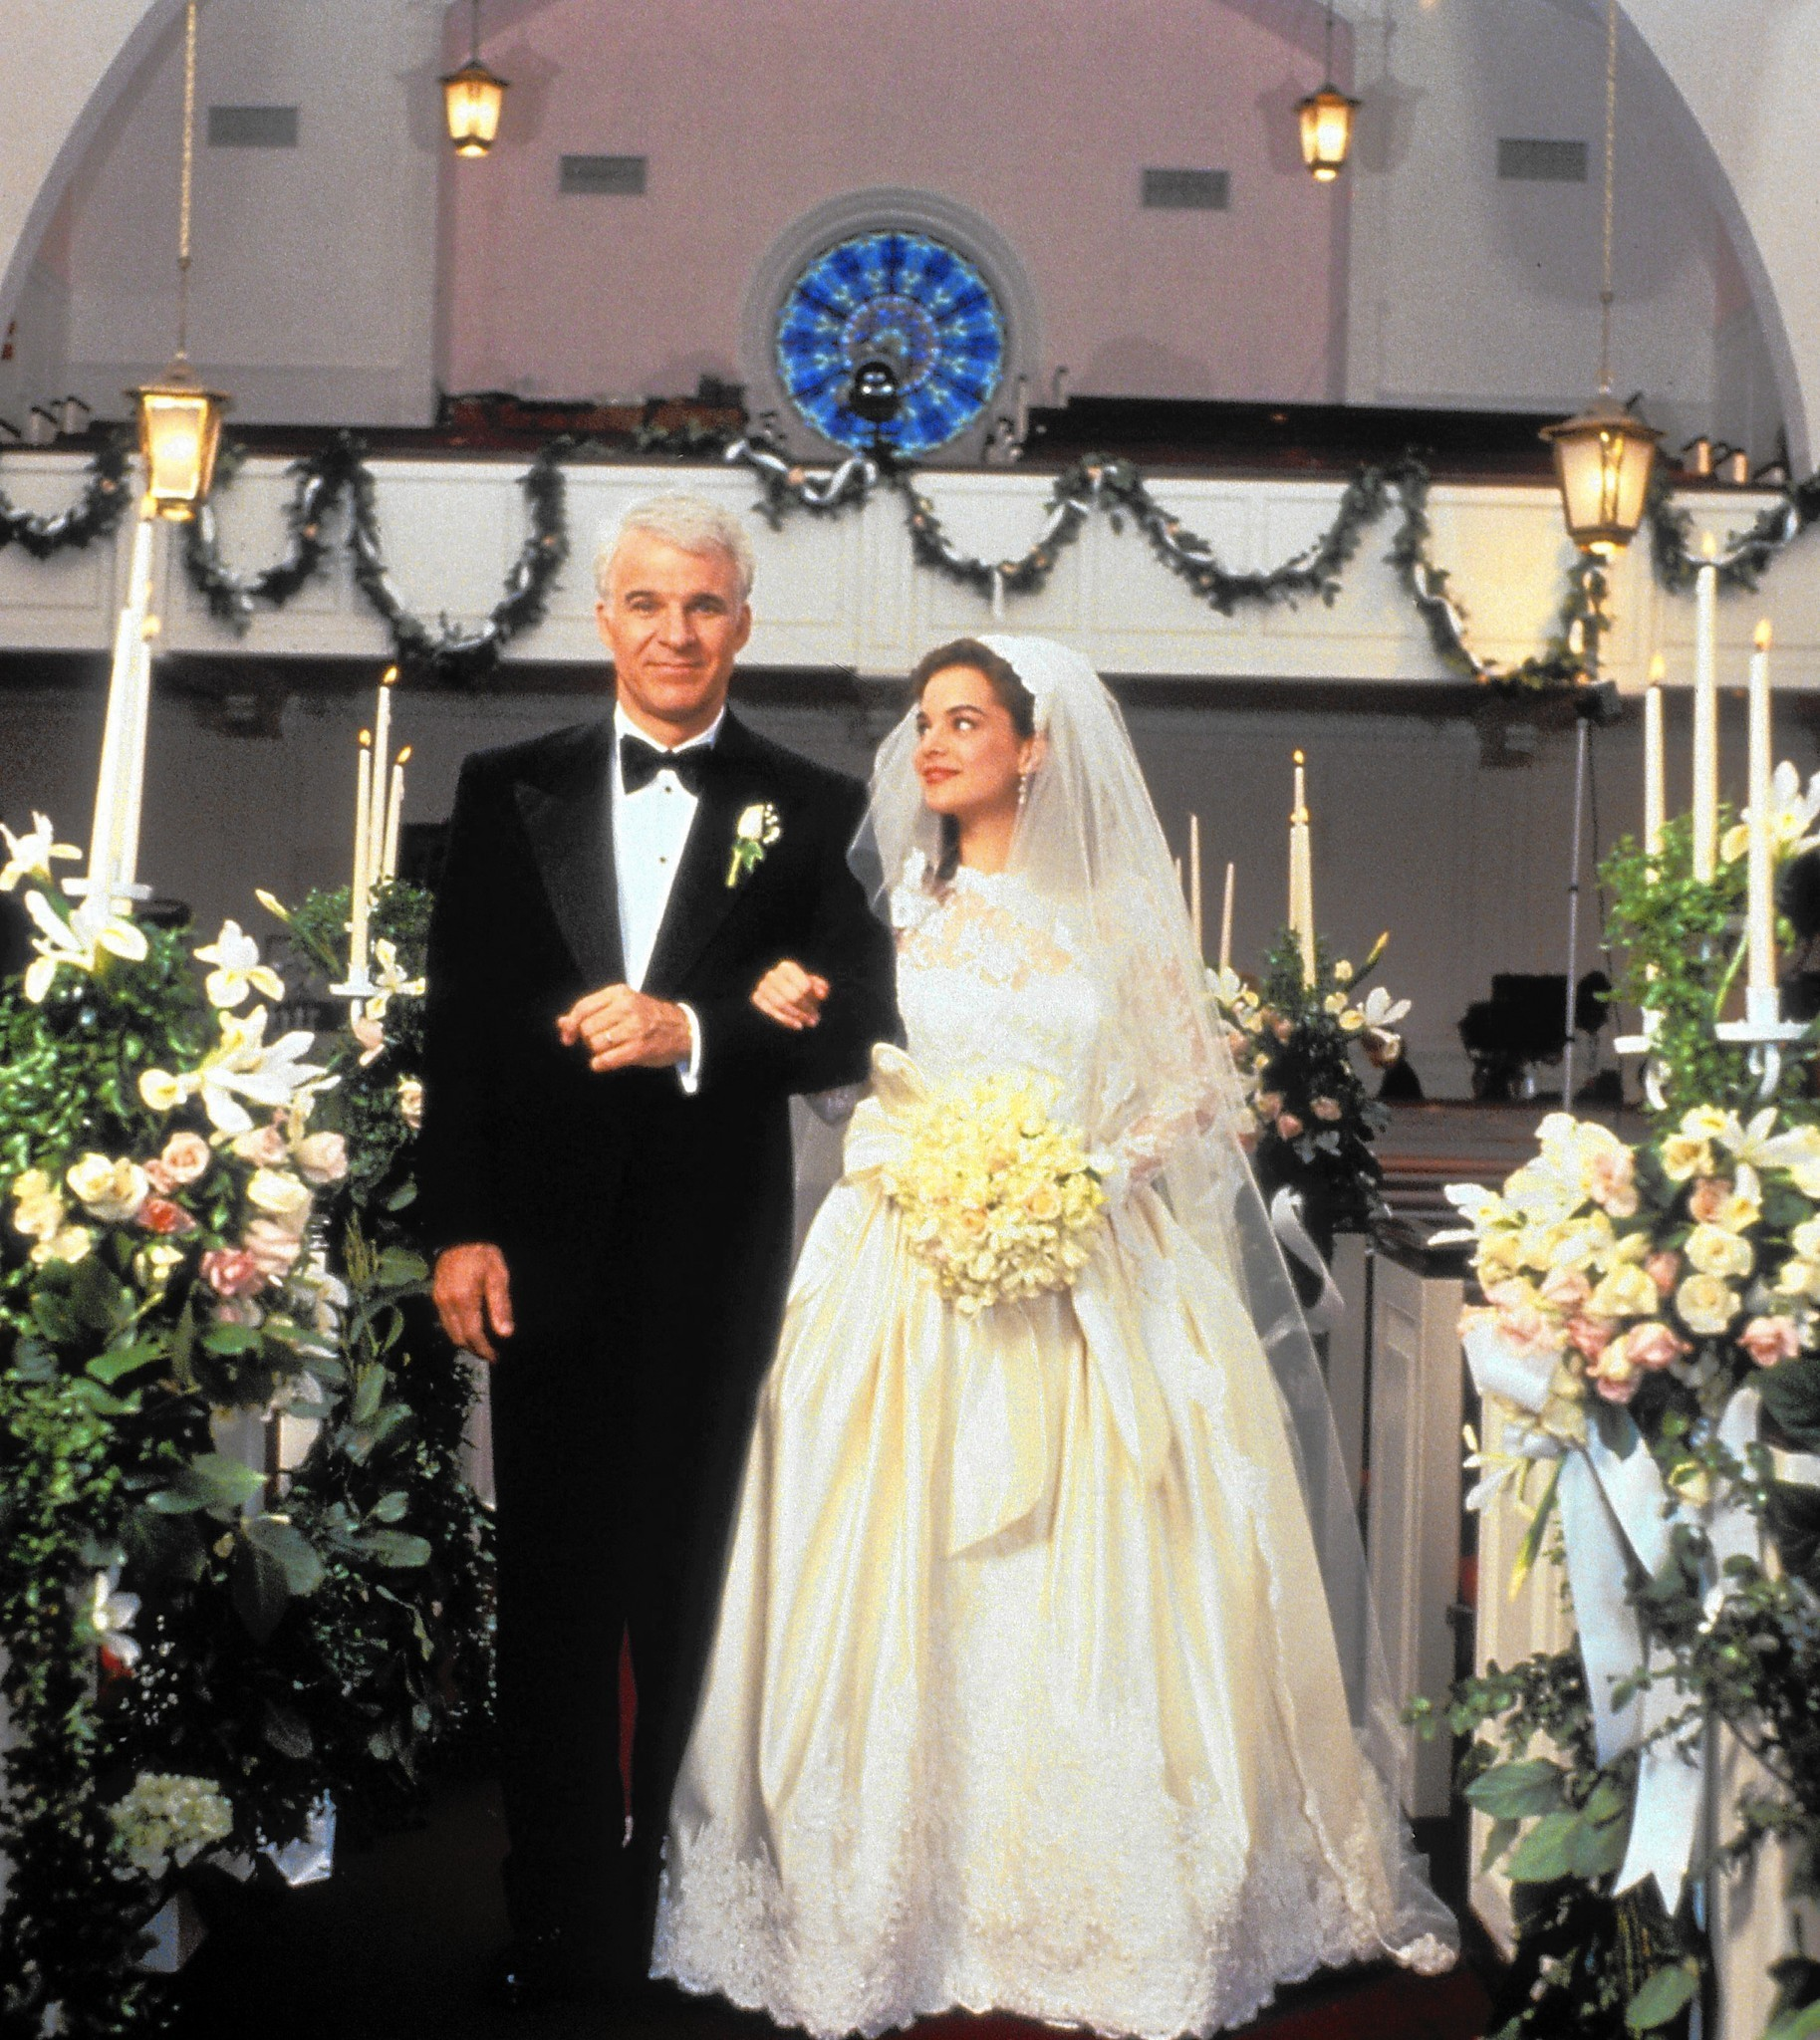 Paying For The Wedding: Bride's Family May Be Getting Some